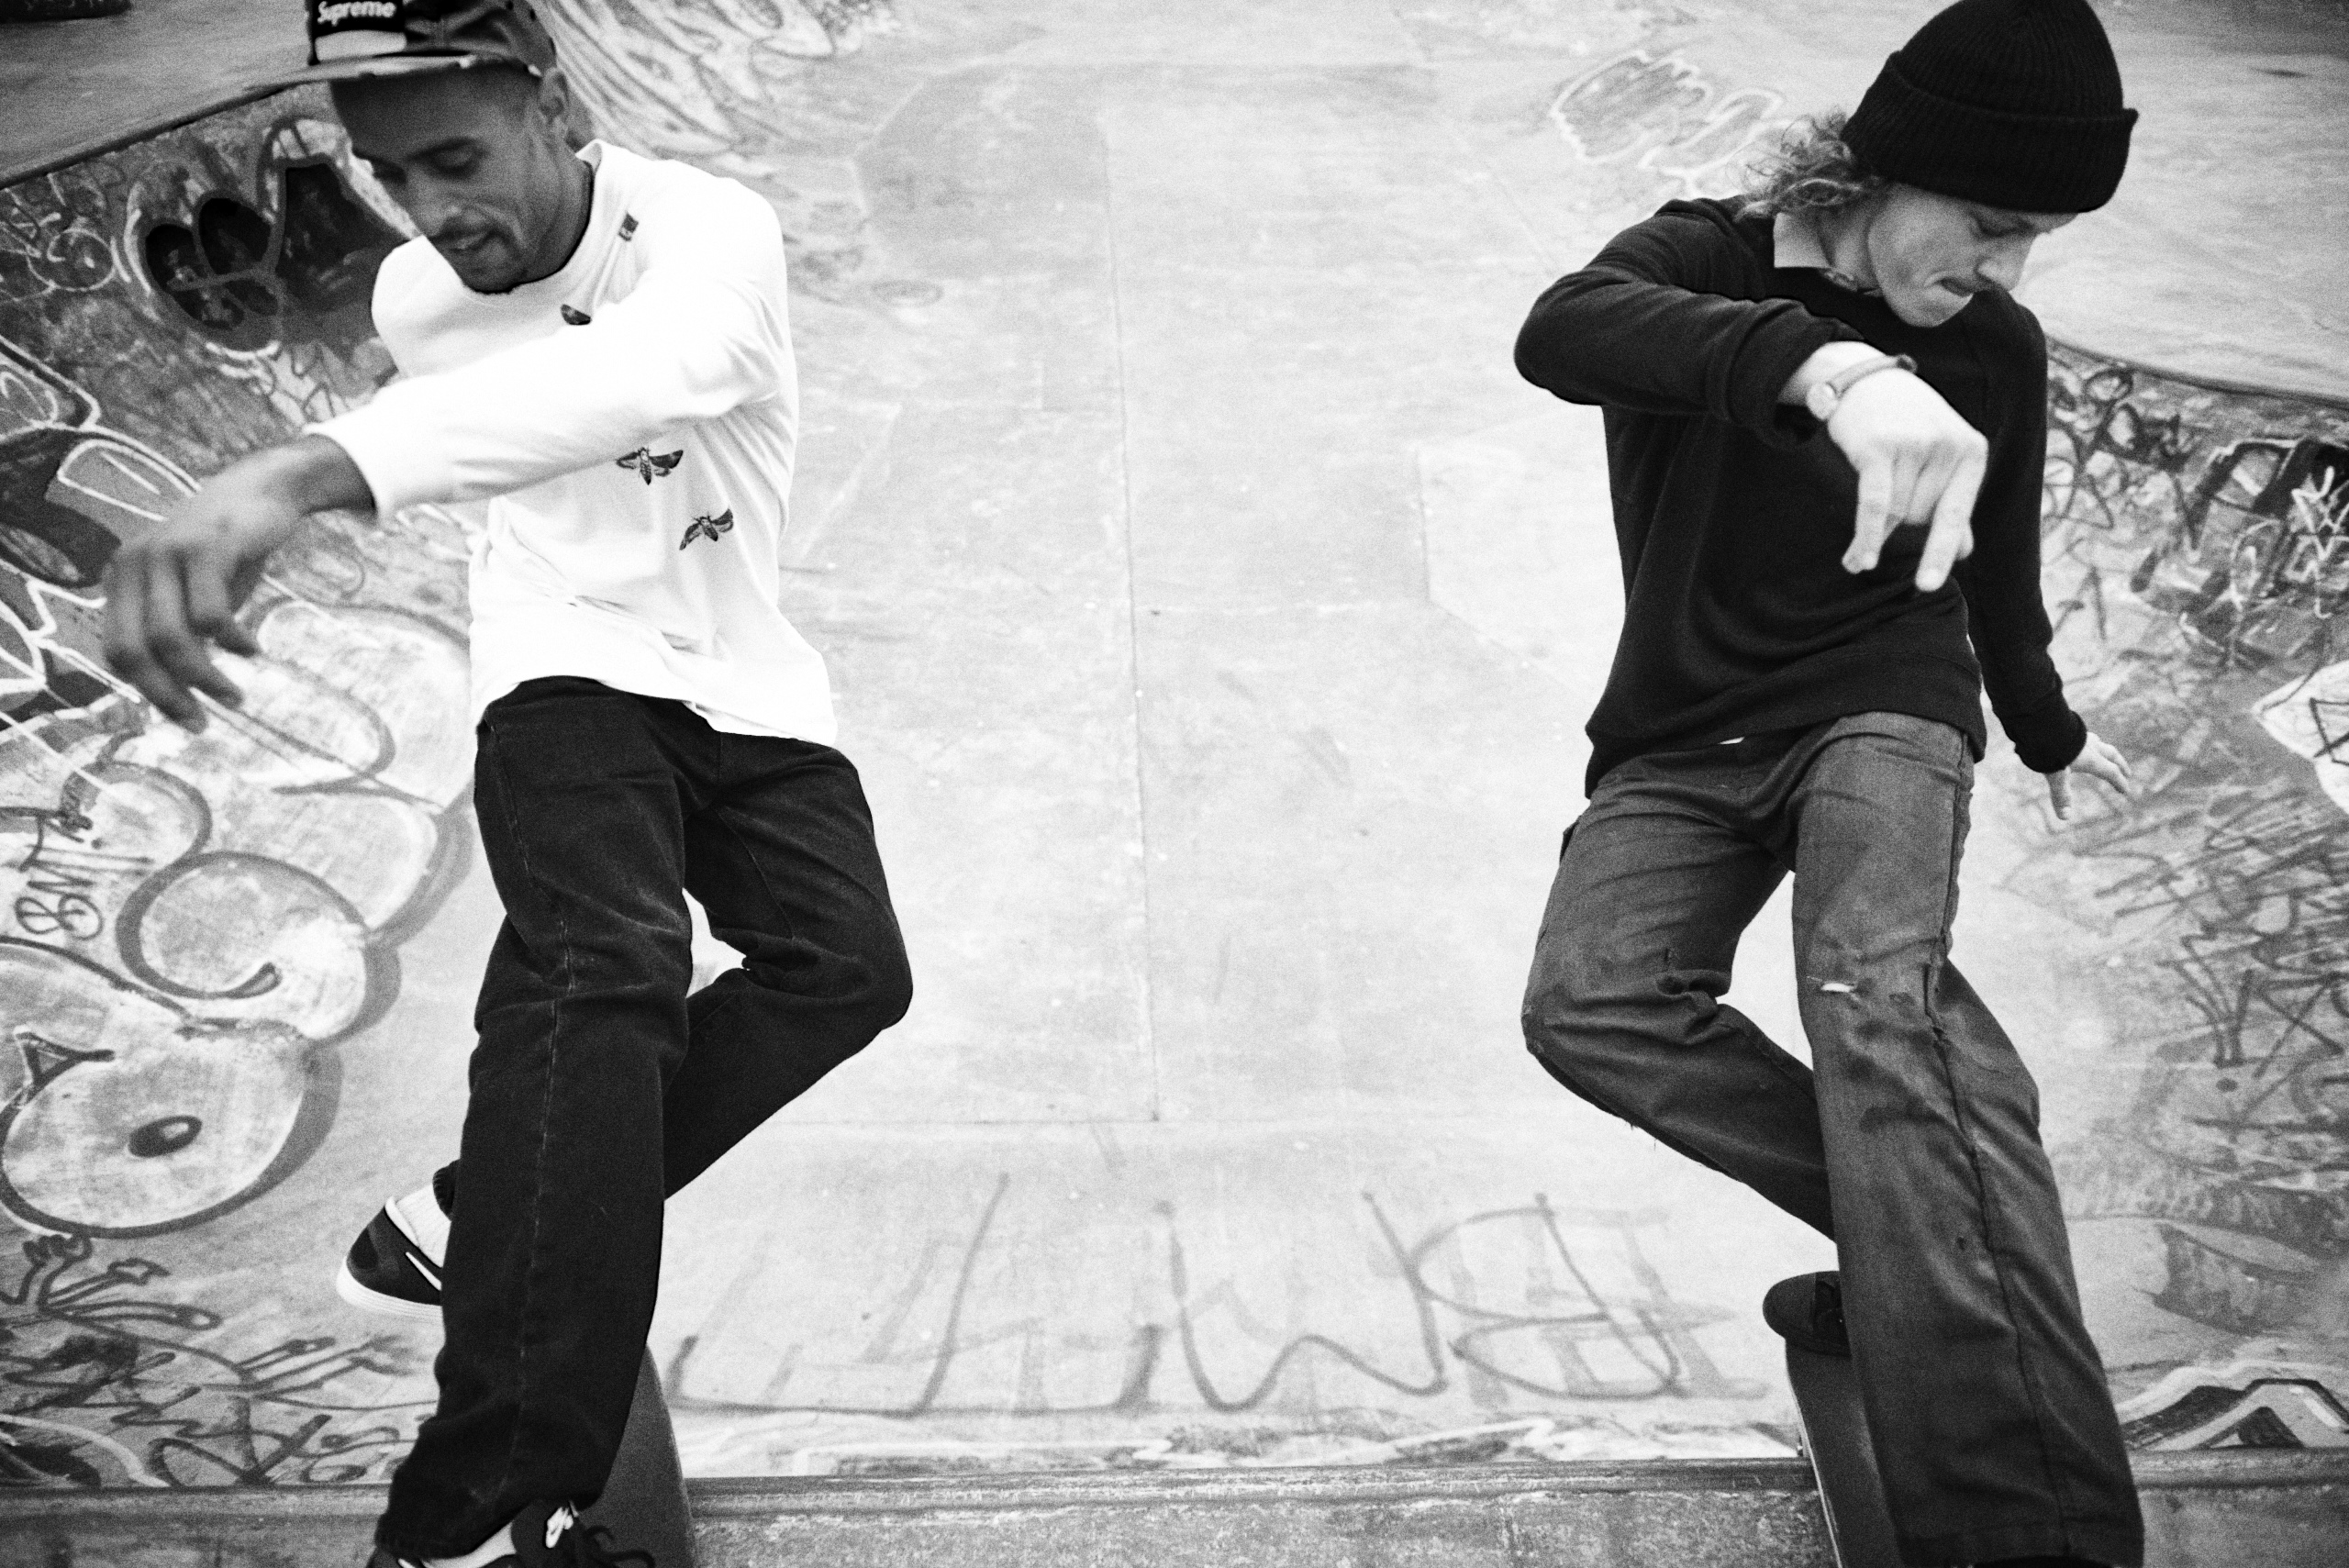 Brixton-skate-park-Matt-Stansfield-Lifestyle-Youth-Culture_13